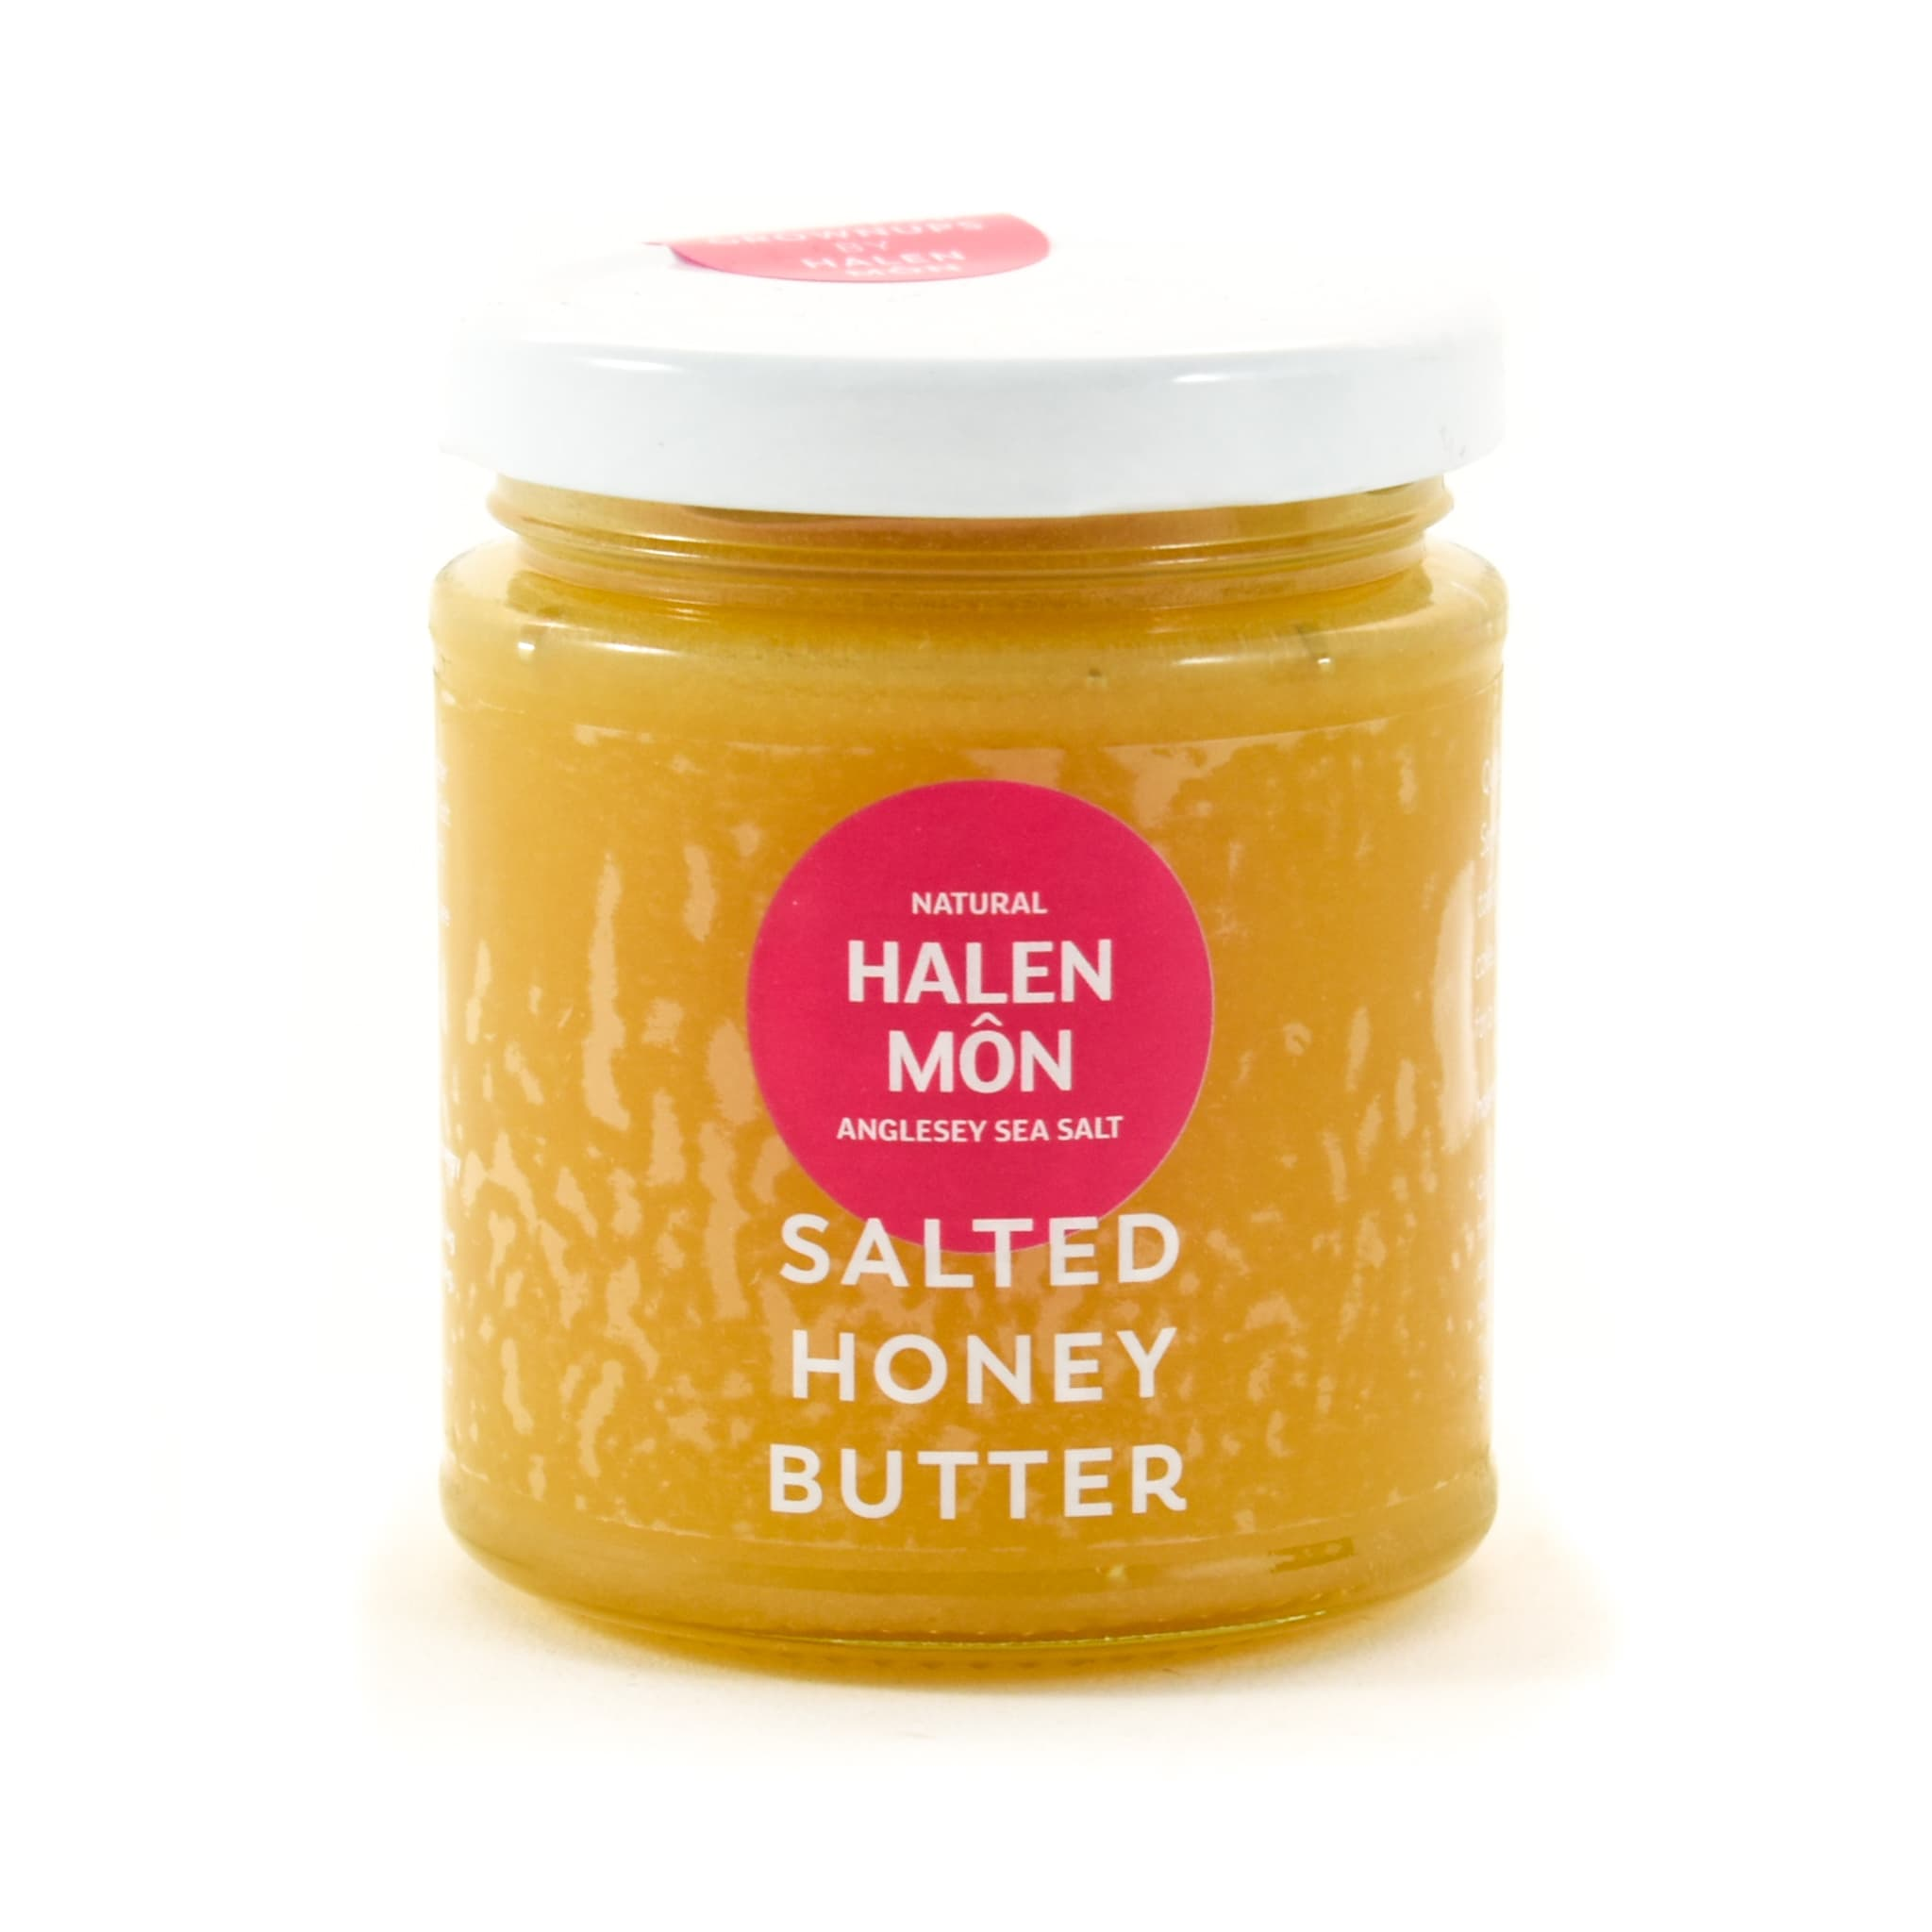 Halen Môn Salted Butter Honey 225g